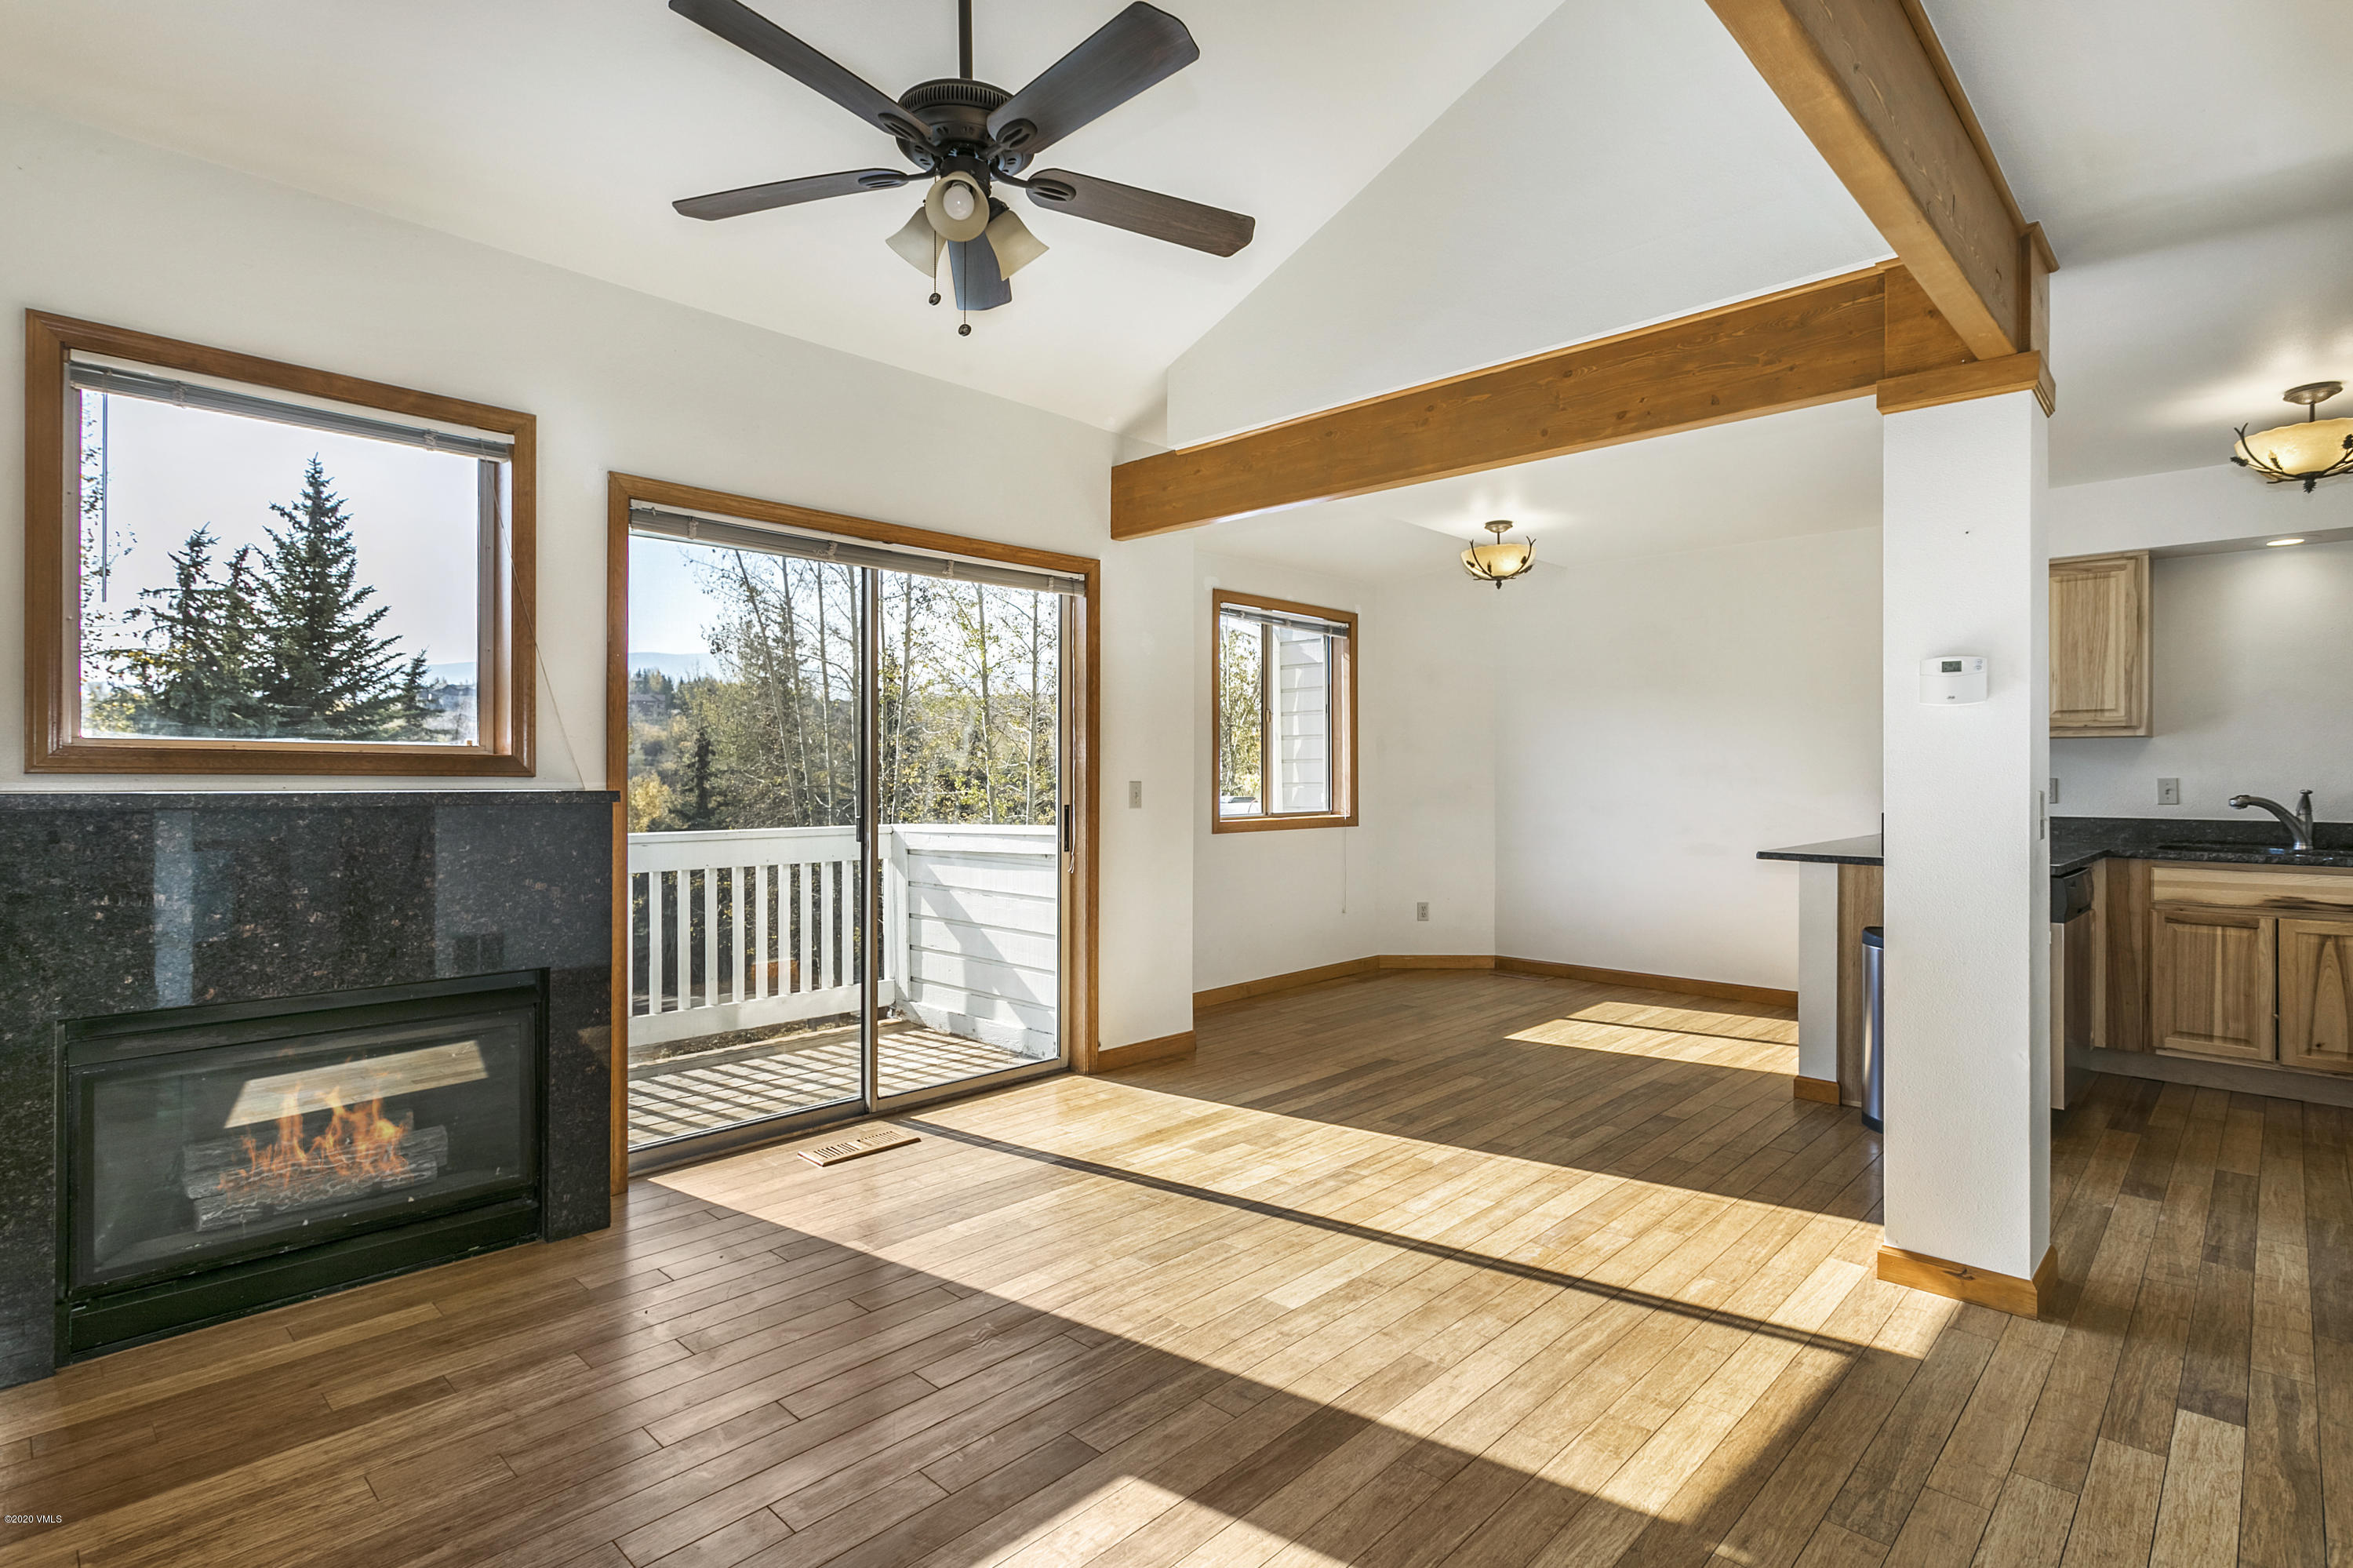 This sunny South-facing 4 bedroom updated townhome in Wildridge features granite countertops, vaulted ceilings, 2 car garage, and views.  Perfect as a primary residence or as a rental property.  The home is vacant and easy to show.  Ready to move-in before the ski season starts.